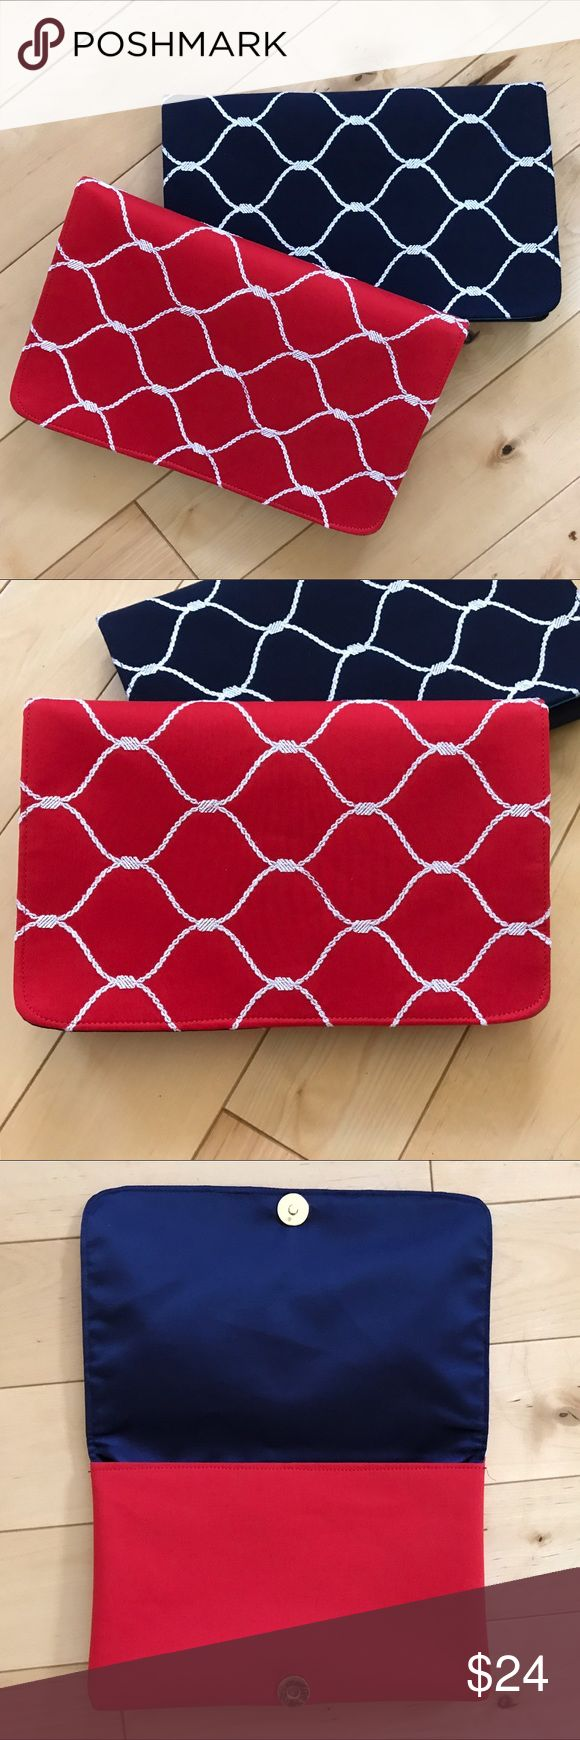 """Shiraleah Red Nautical Clutch Bag Brand new! Measures 9"""" X 6"""". Sold at Anthropologie. Red bag with cute nautical rope pattern. Interior zip pocket. Anthropologie Bags Clutches & Wristlets"""